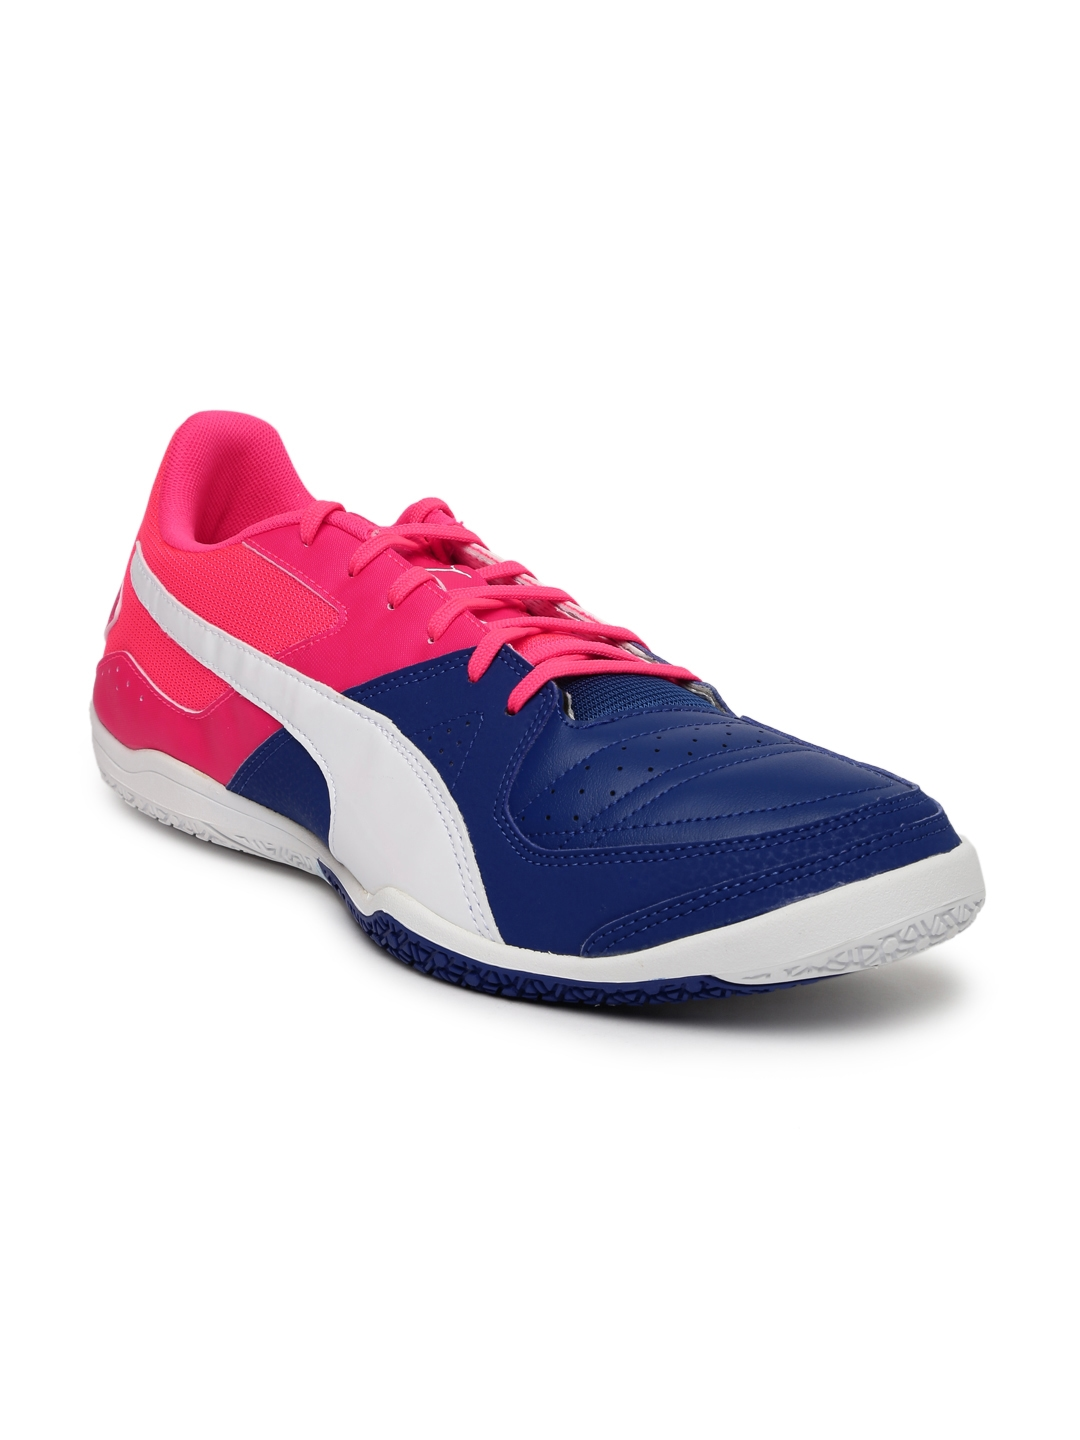 0df94f8cf85 Buy Puma Men Navy Blue Gavetto Sala Tennis Shoes - Sports Shoes for ...